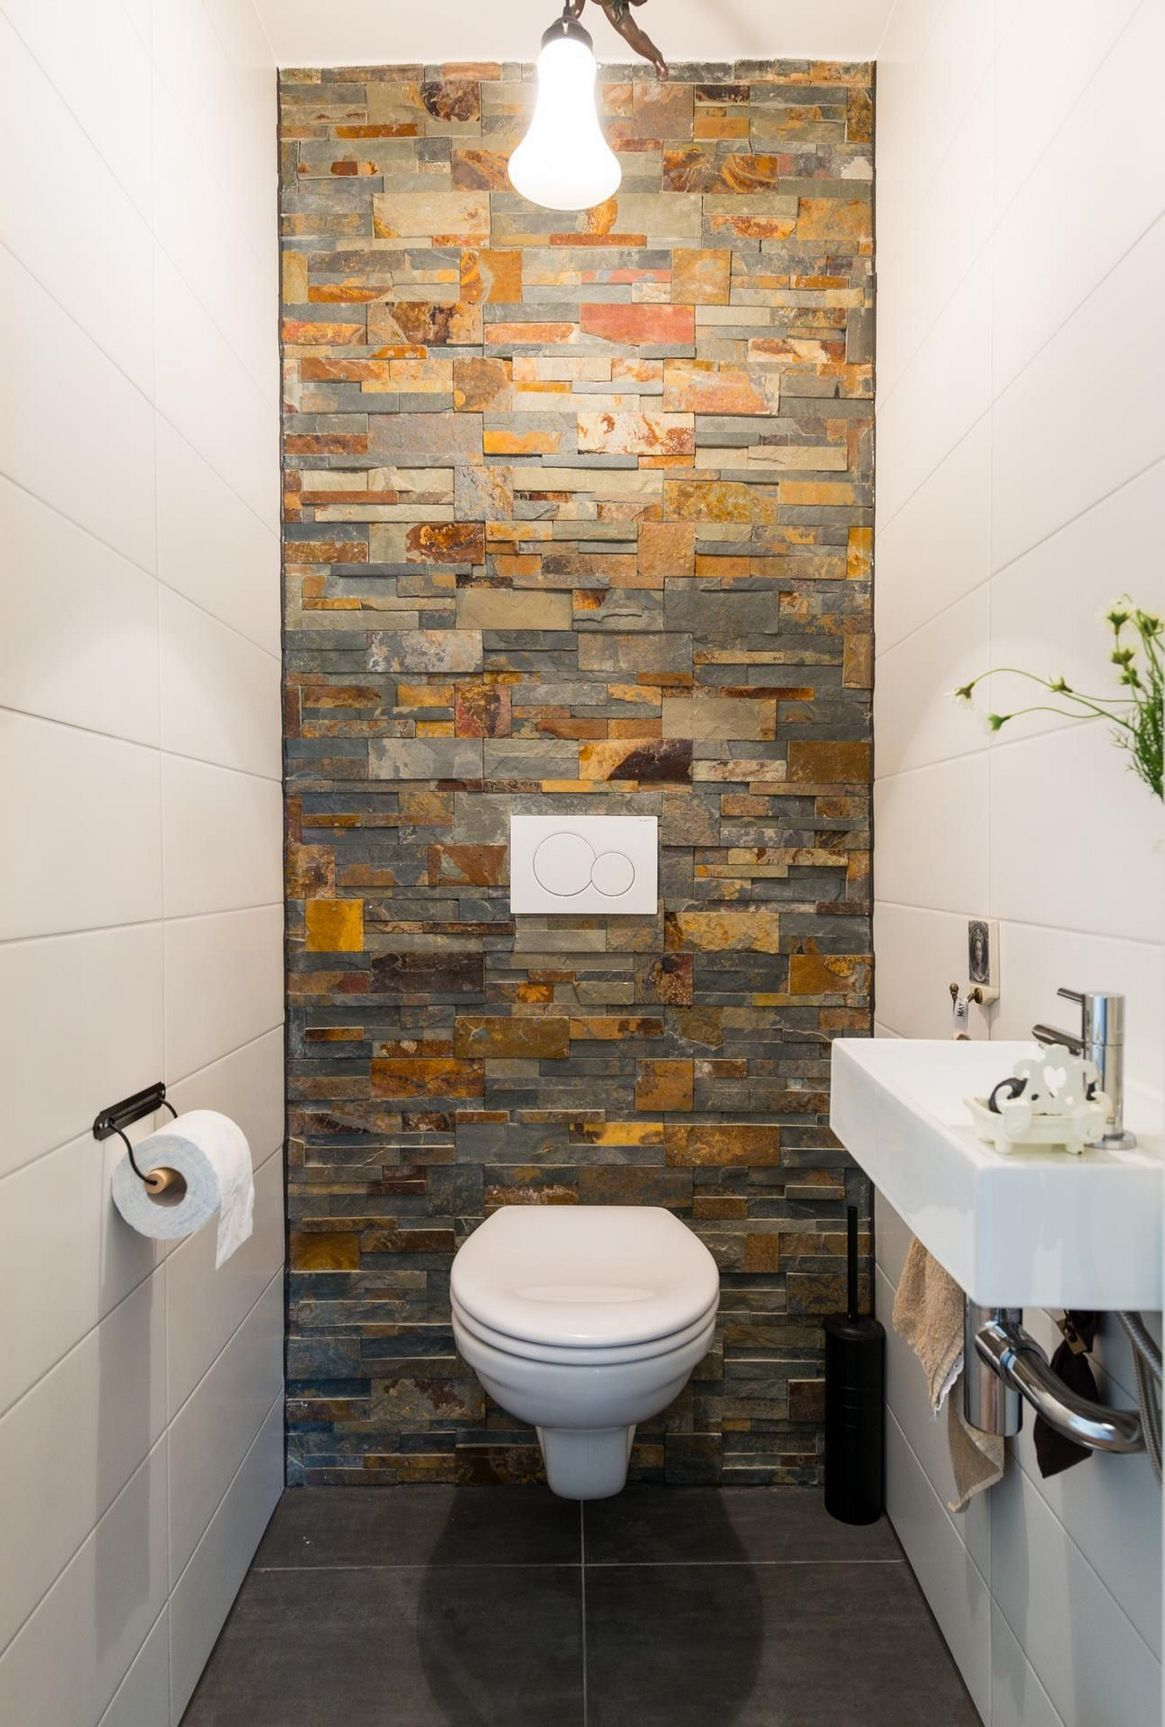 40 Dreamy Wc Toilet Ideas In The Bathroom With Full Inspirations Small Toilet Room Bathroom Design Small Toilet Tiles